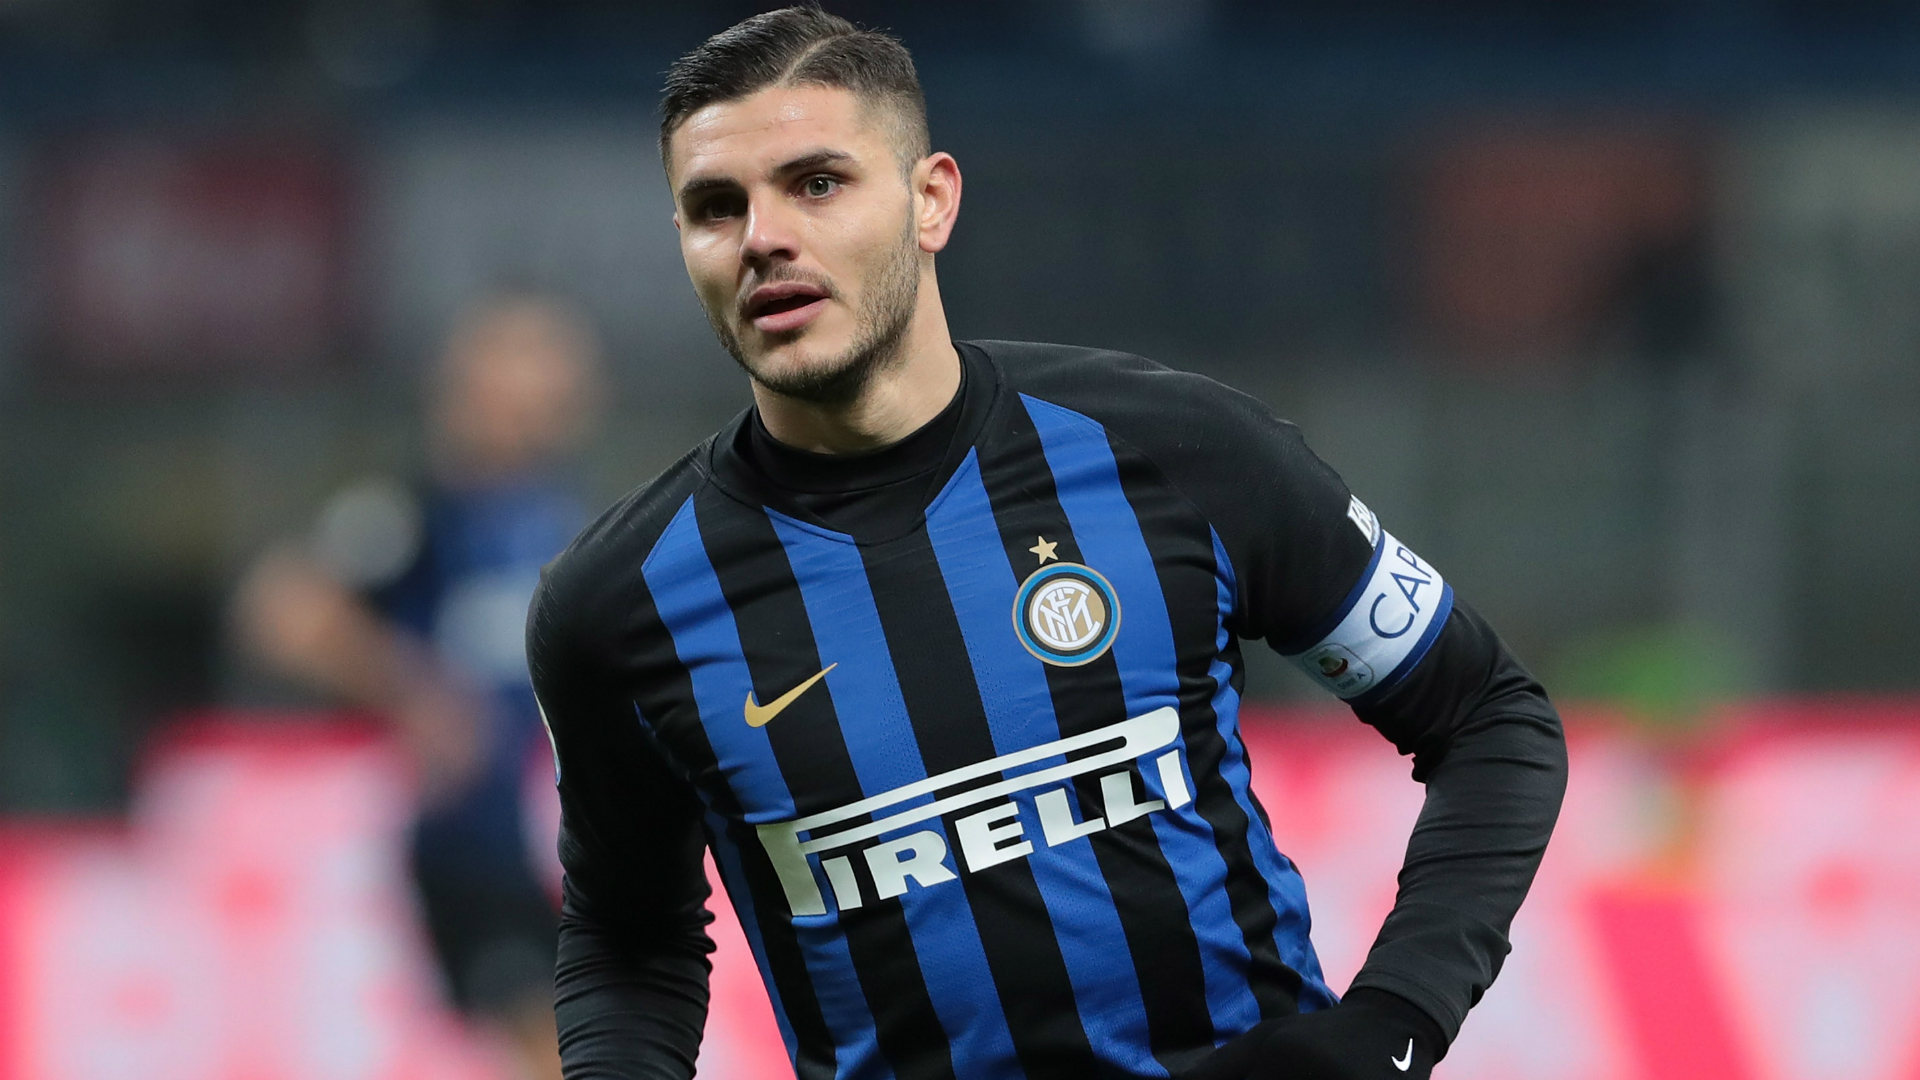 Icardi hints at injury after pulling out of Inter squad